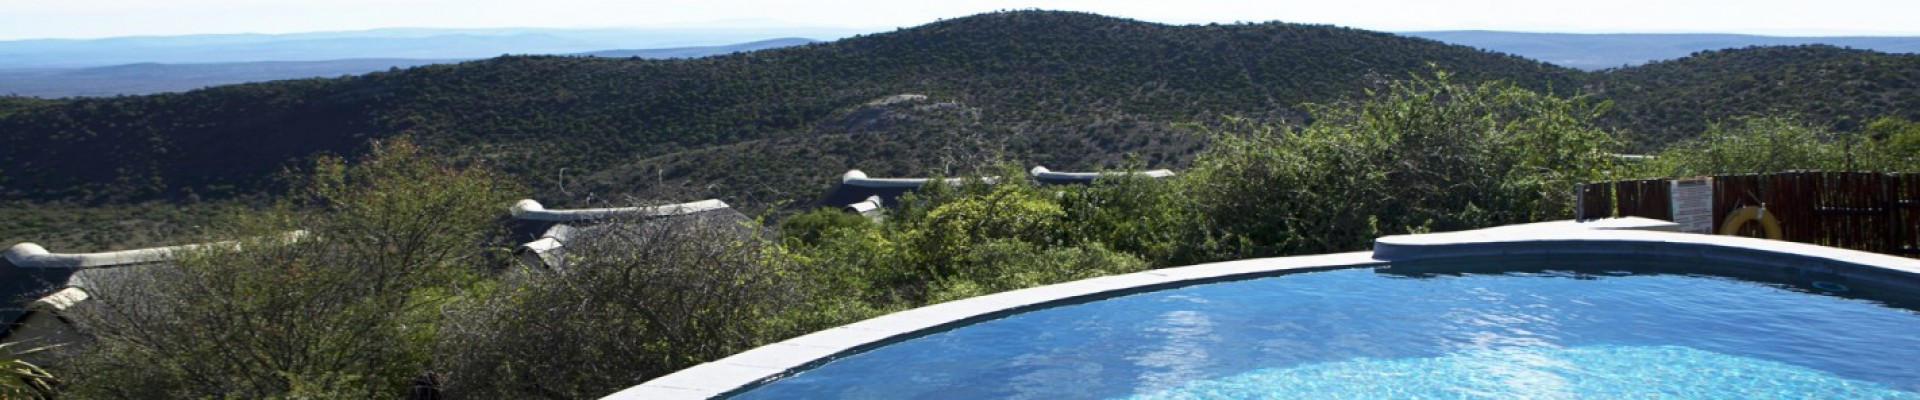 5* Kuzuko Lodge - North of Addo Elephant Park Package (2 Nights)